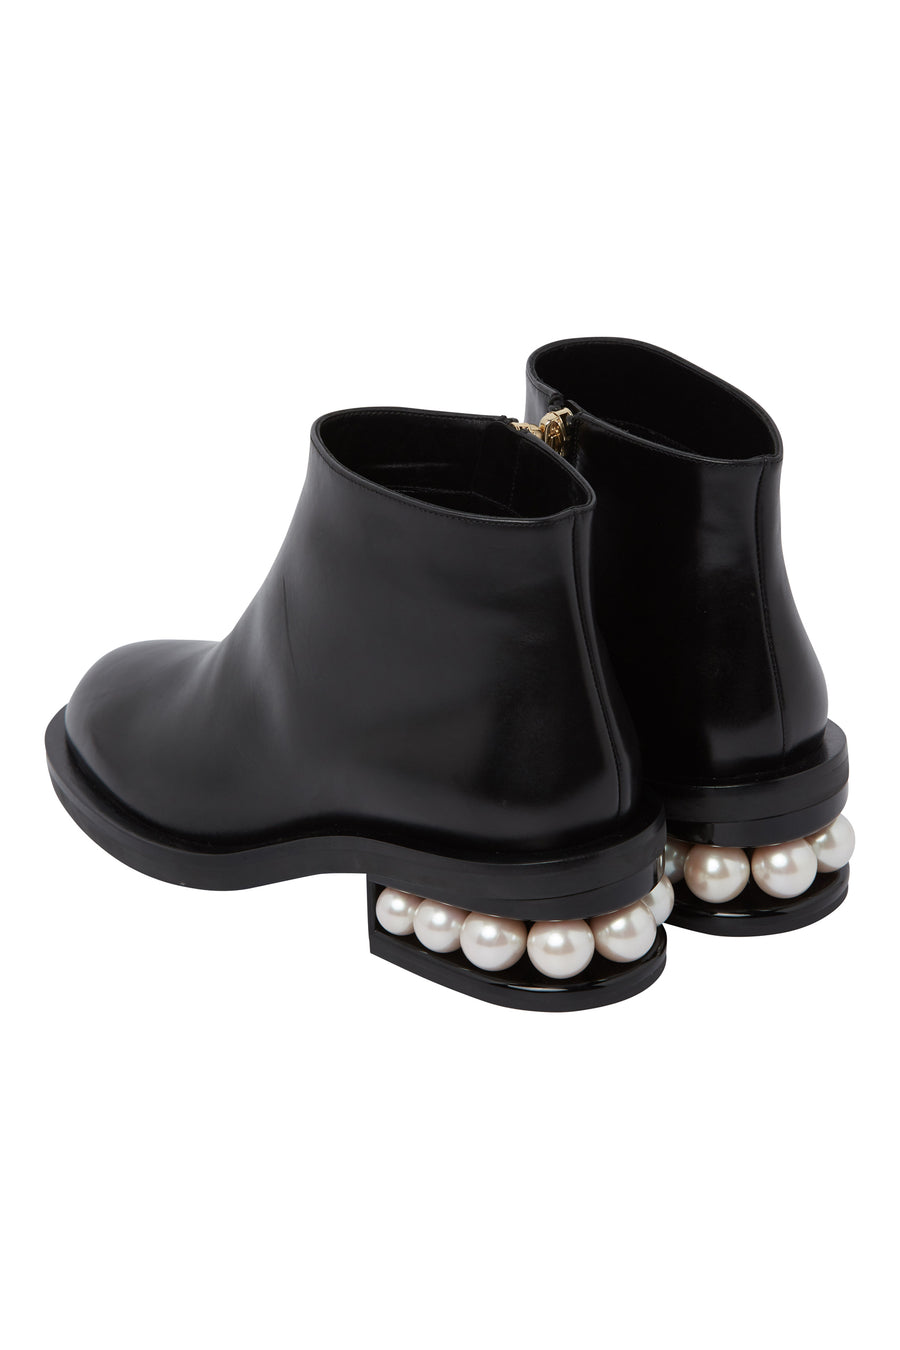 Nicholas Kirkwood Casati Pearl Ankle Boots in black from The New Trend Default